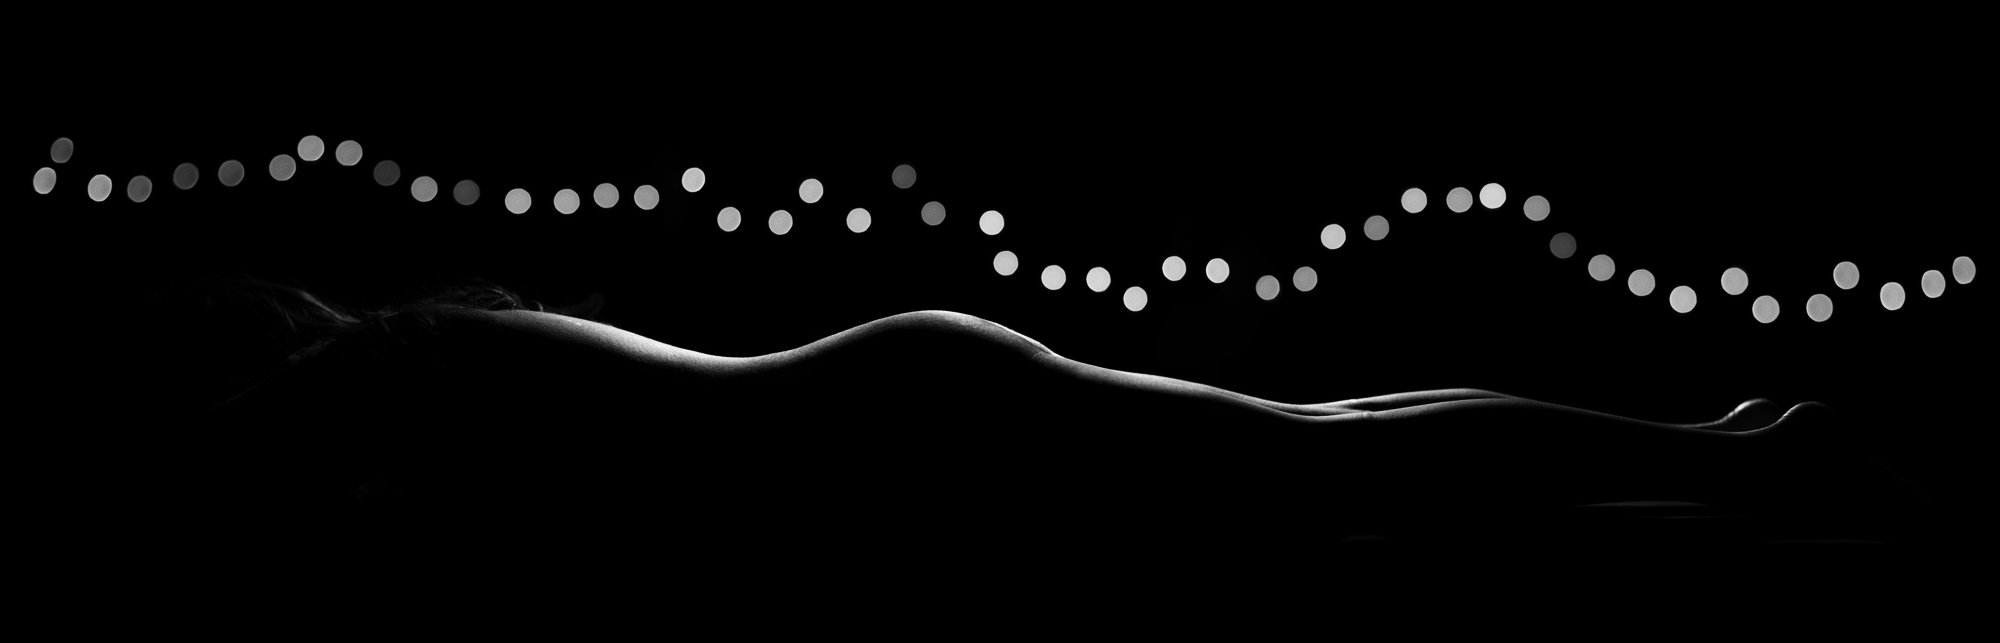 New Gallery: Nude Panoramas — Jon Witsell Photographic Arts for String Lights Black Background  568zmd